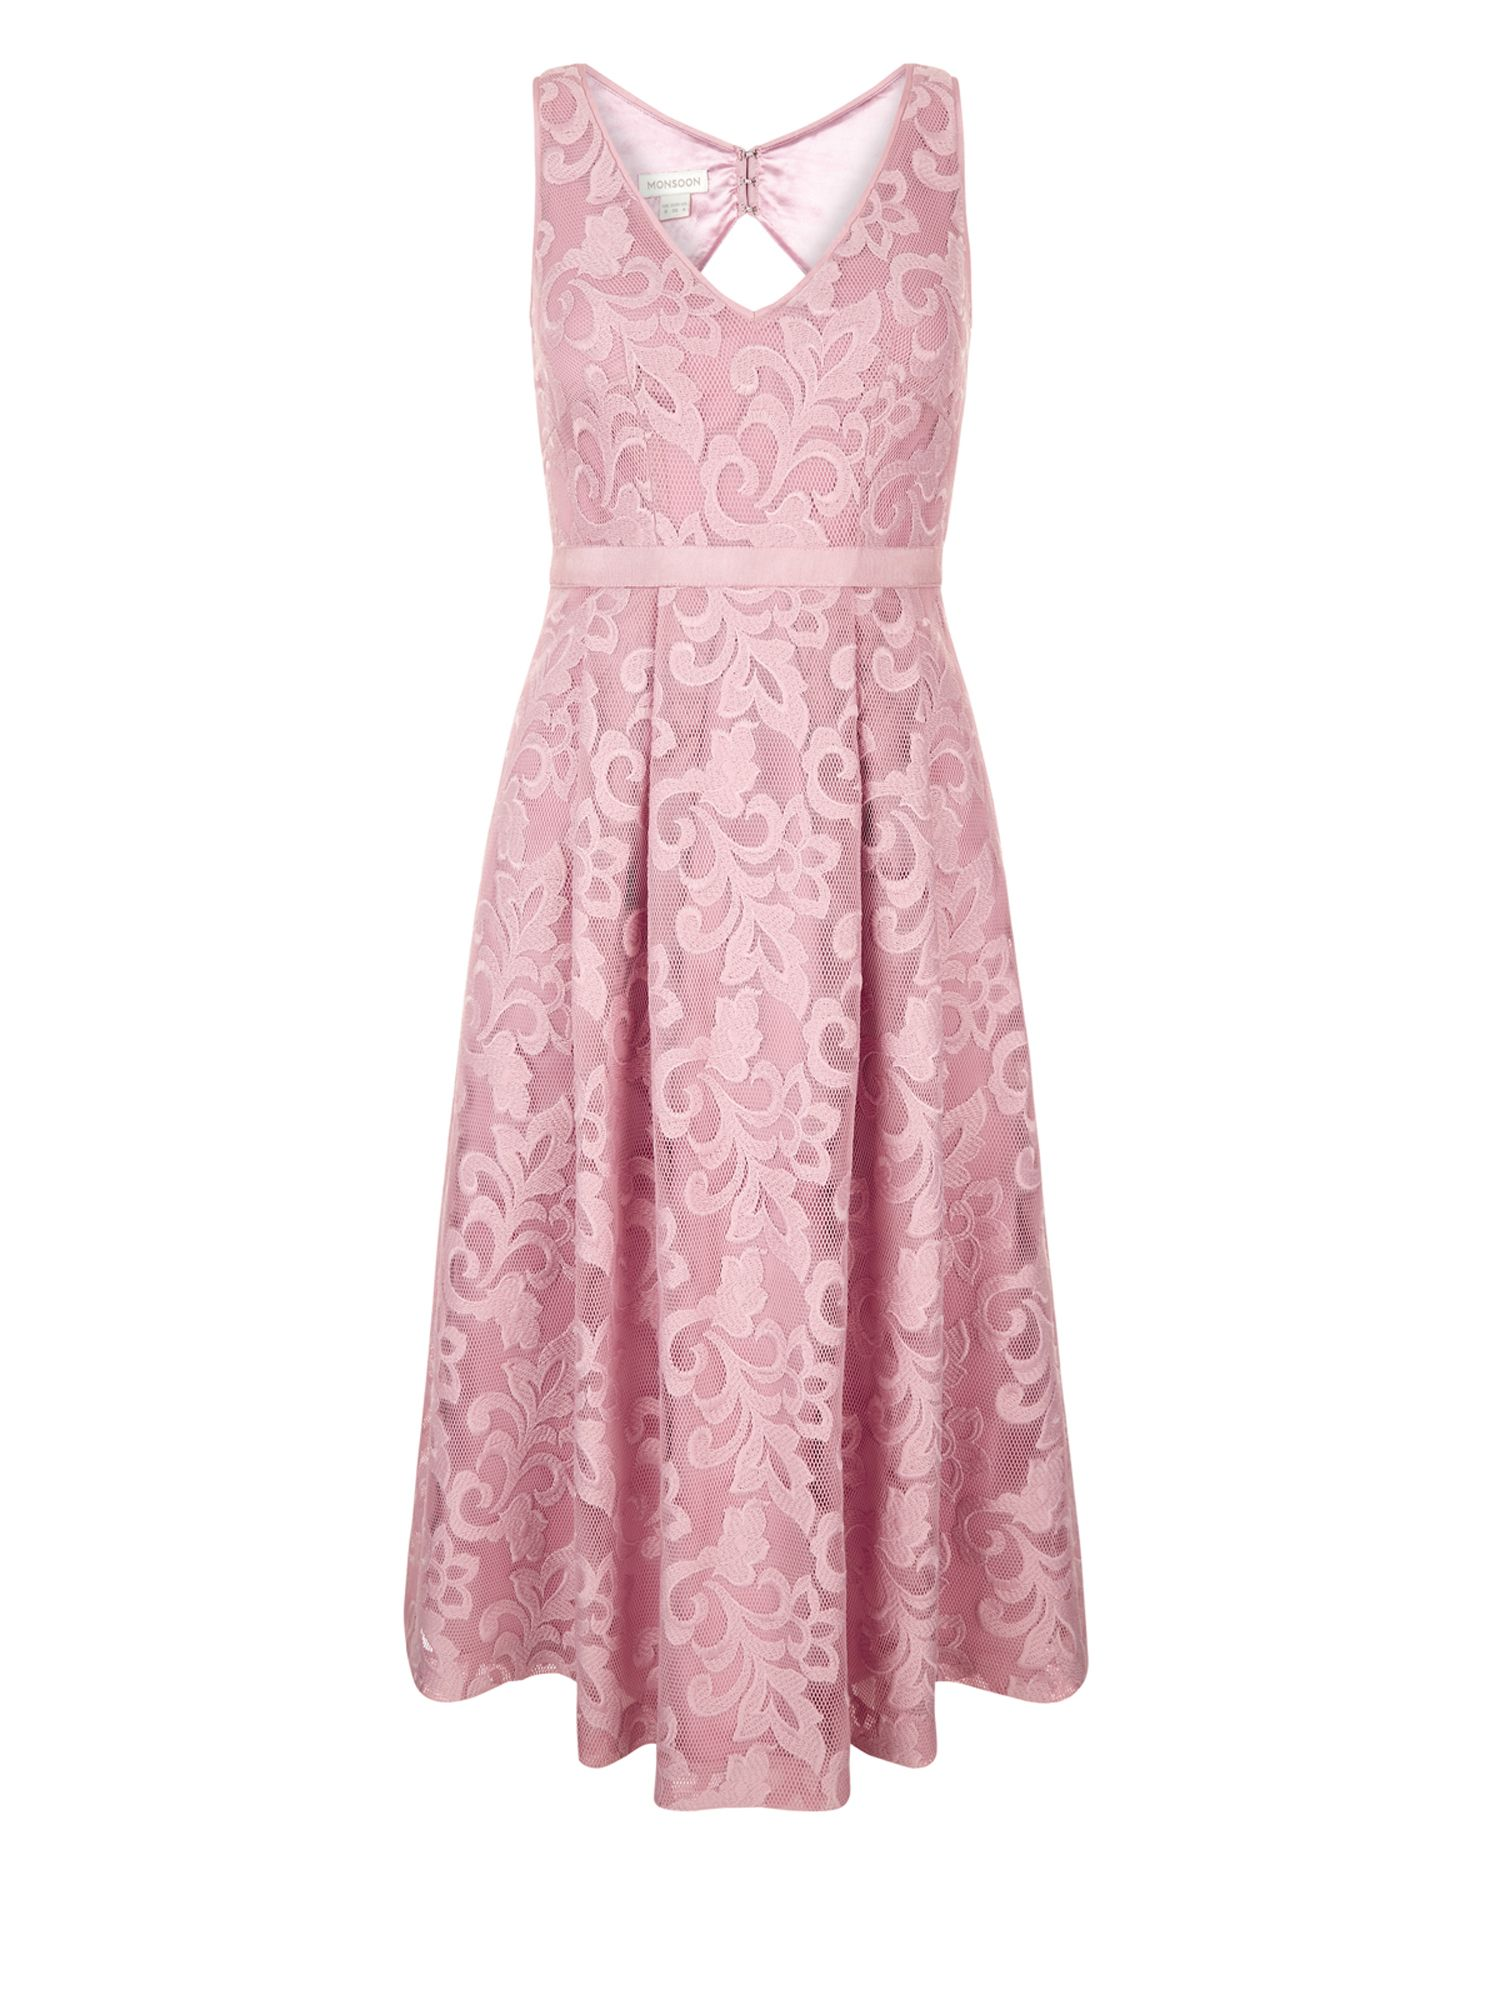 Monsoon Delphinium Dress, Pink